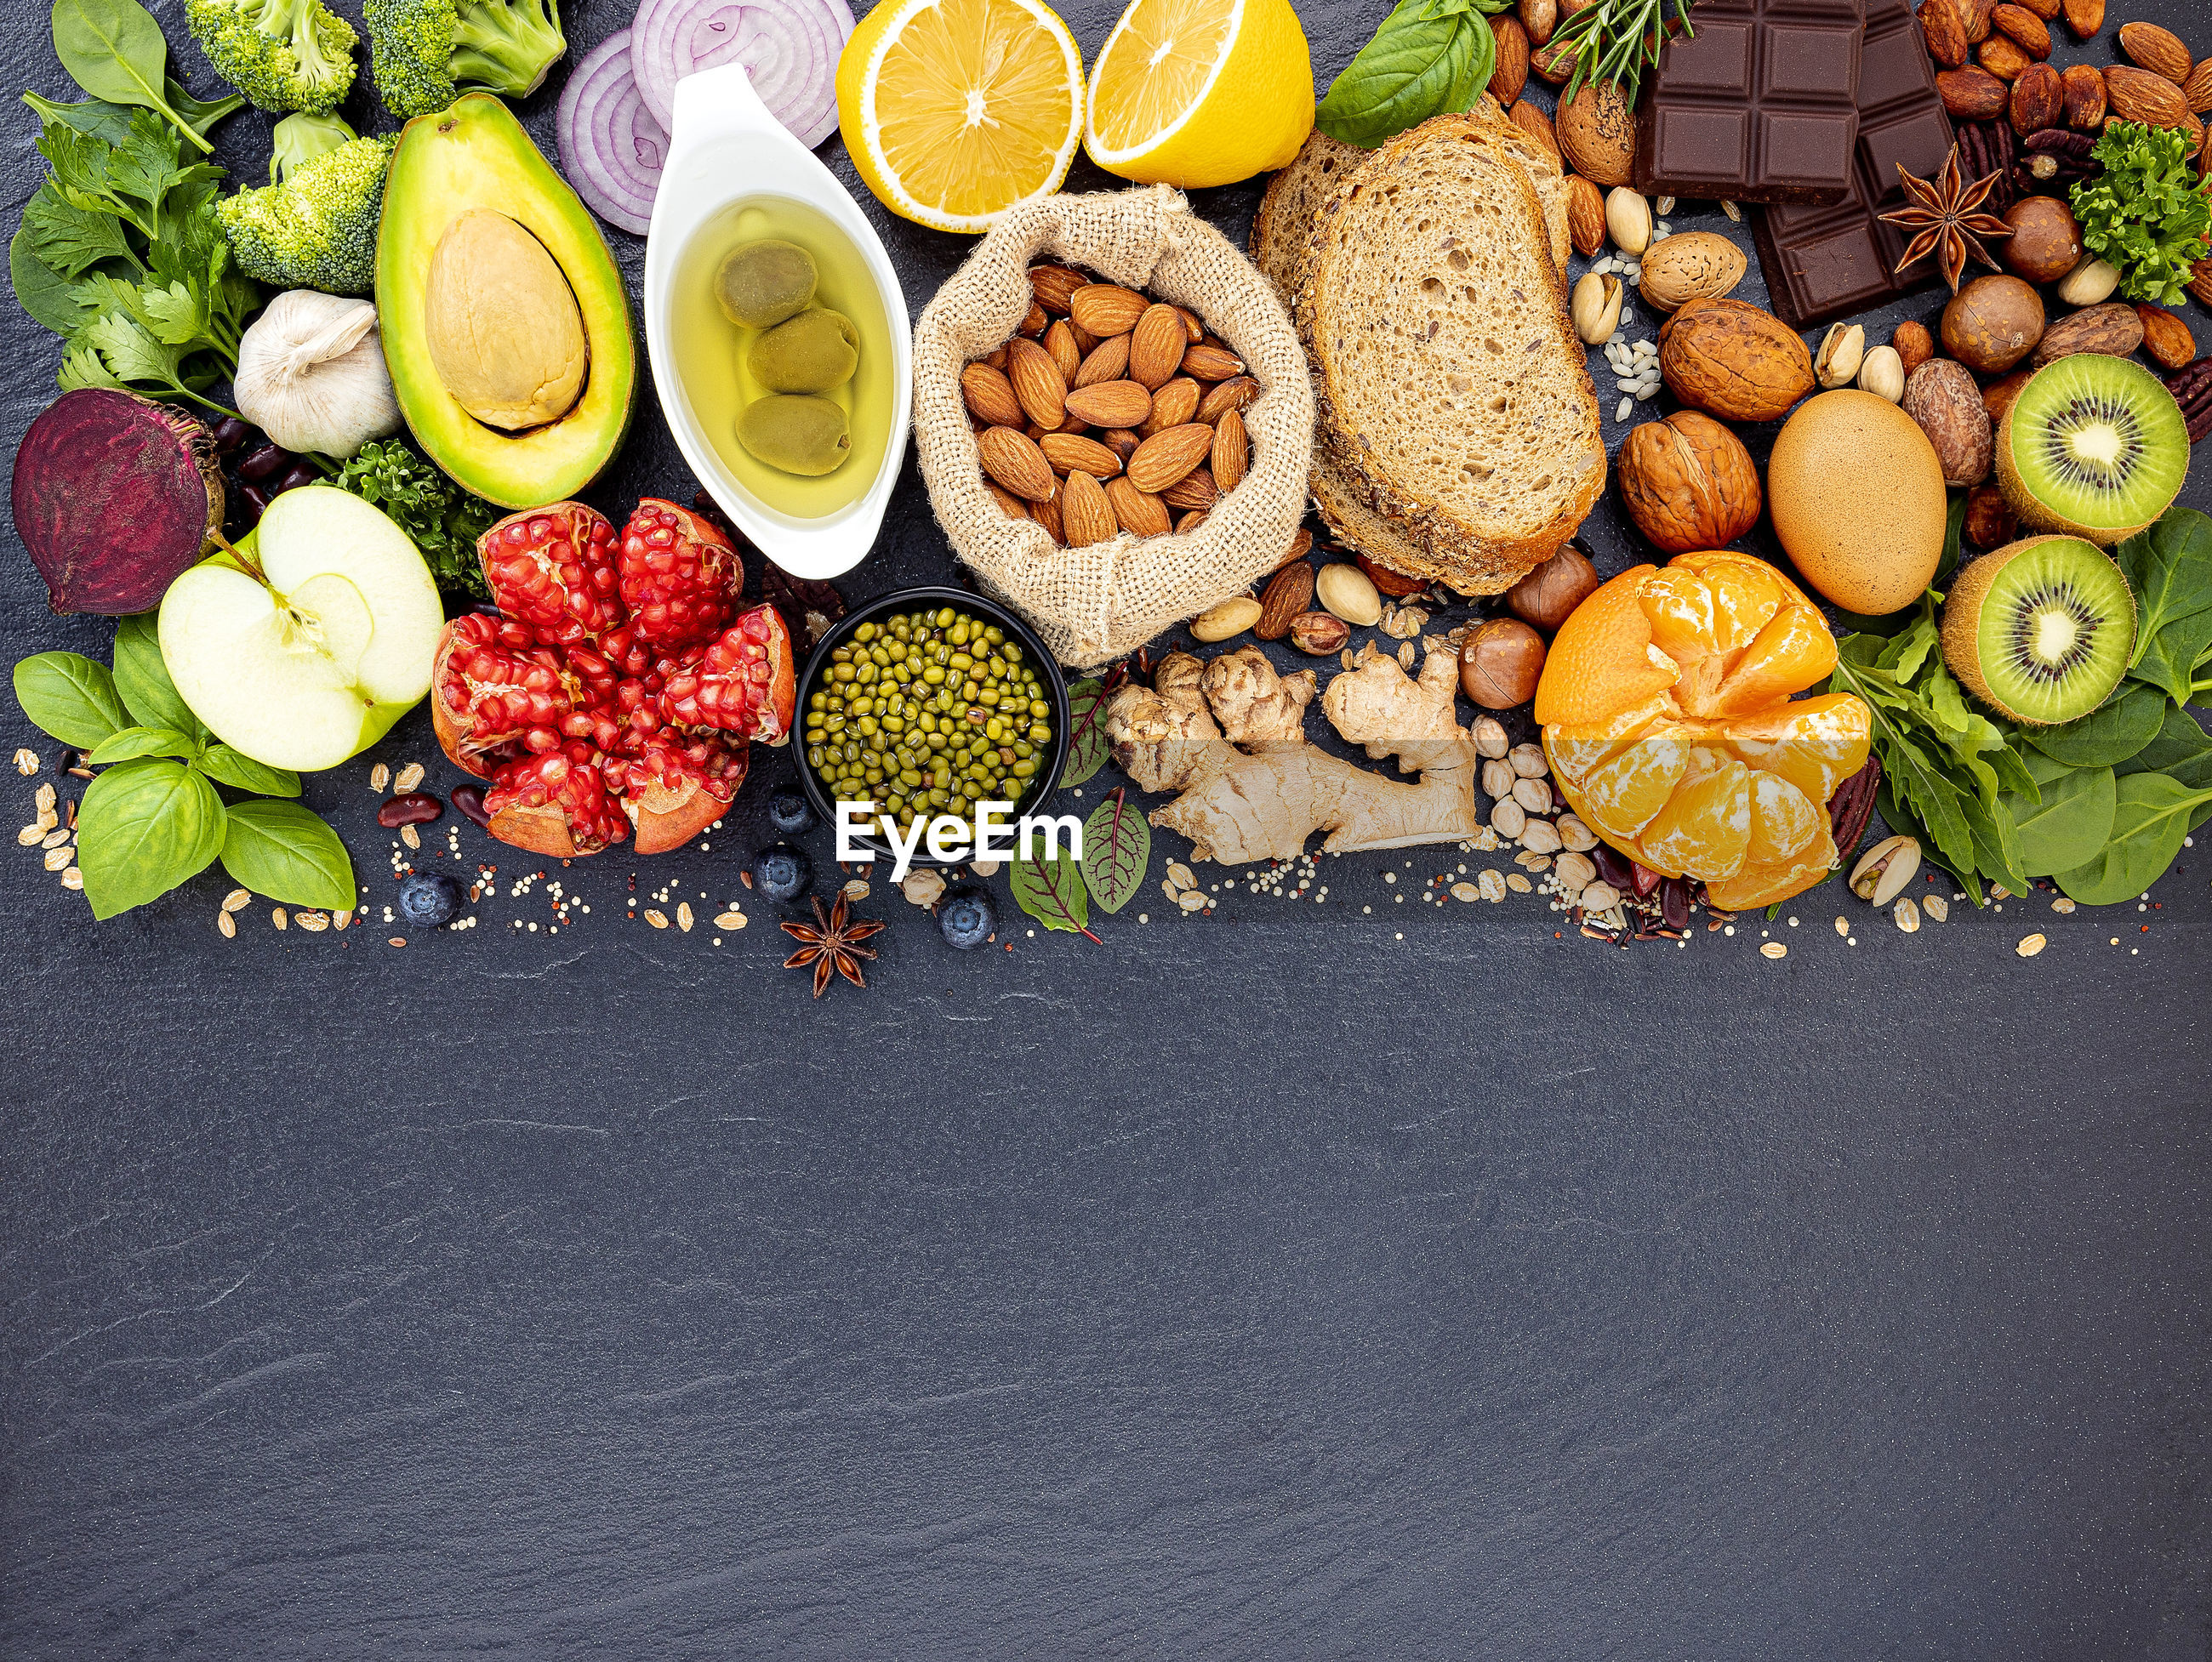 HIGH ANGLE VIEW OF FRUITS IN MARKET